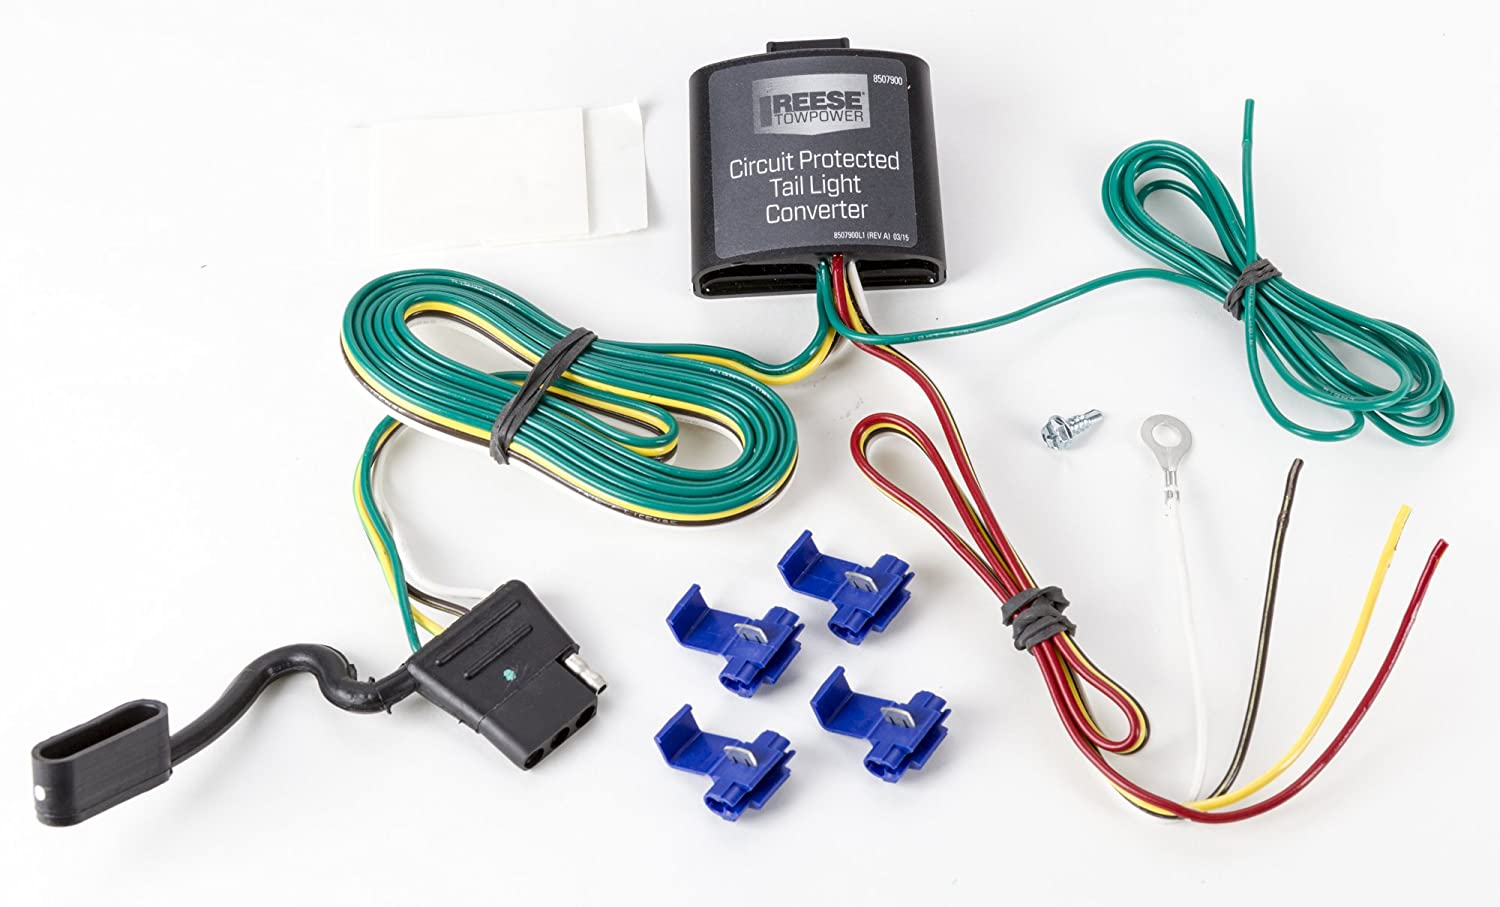 Reese Towpower 8507900 Circuit Protected Tail Light Home Wiring Converter Automotive